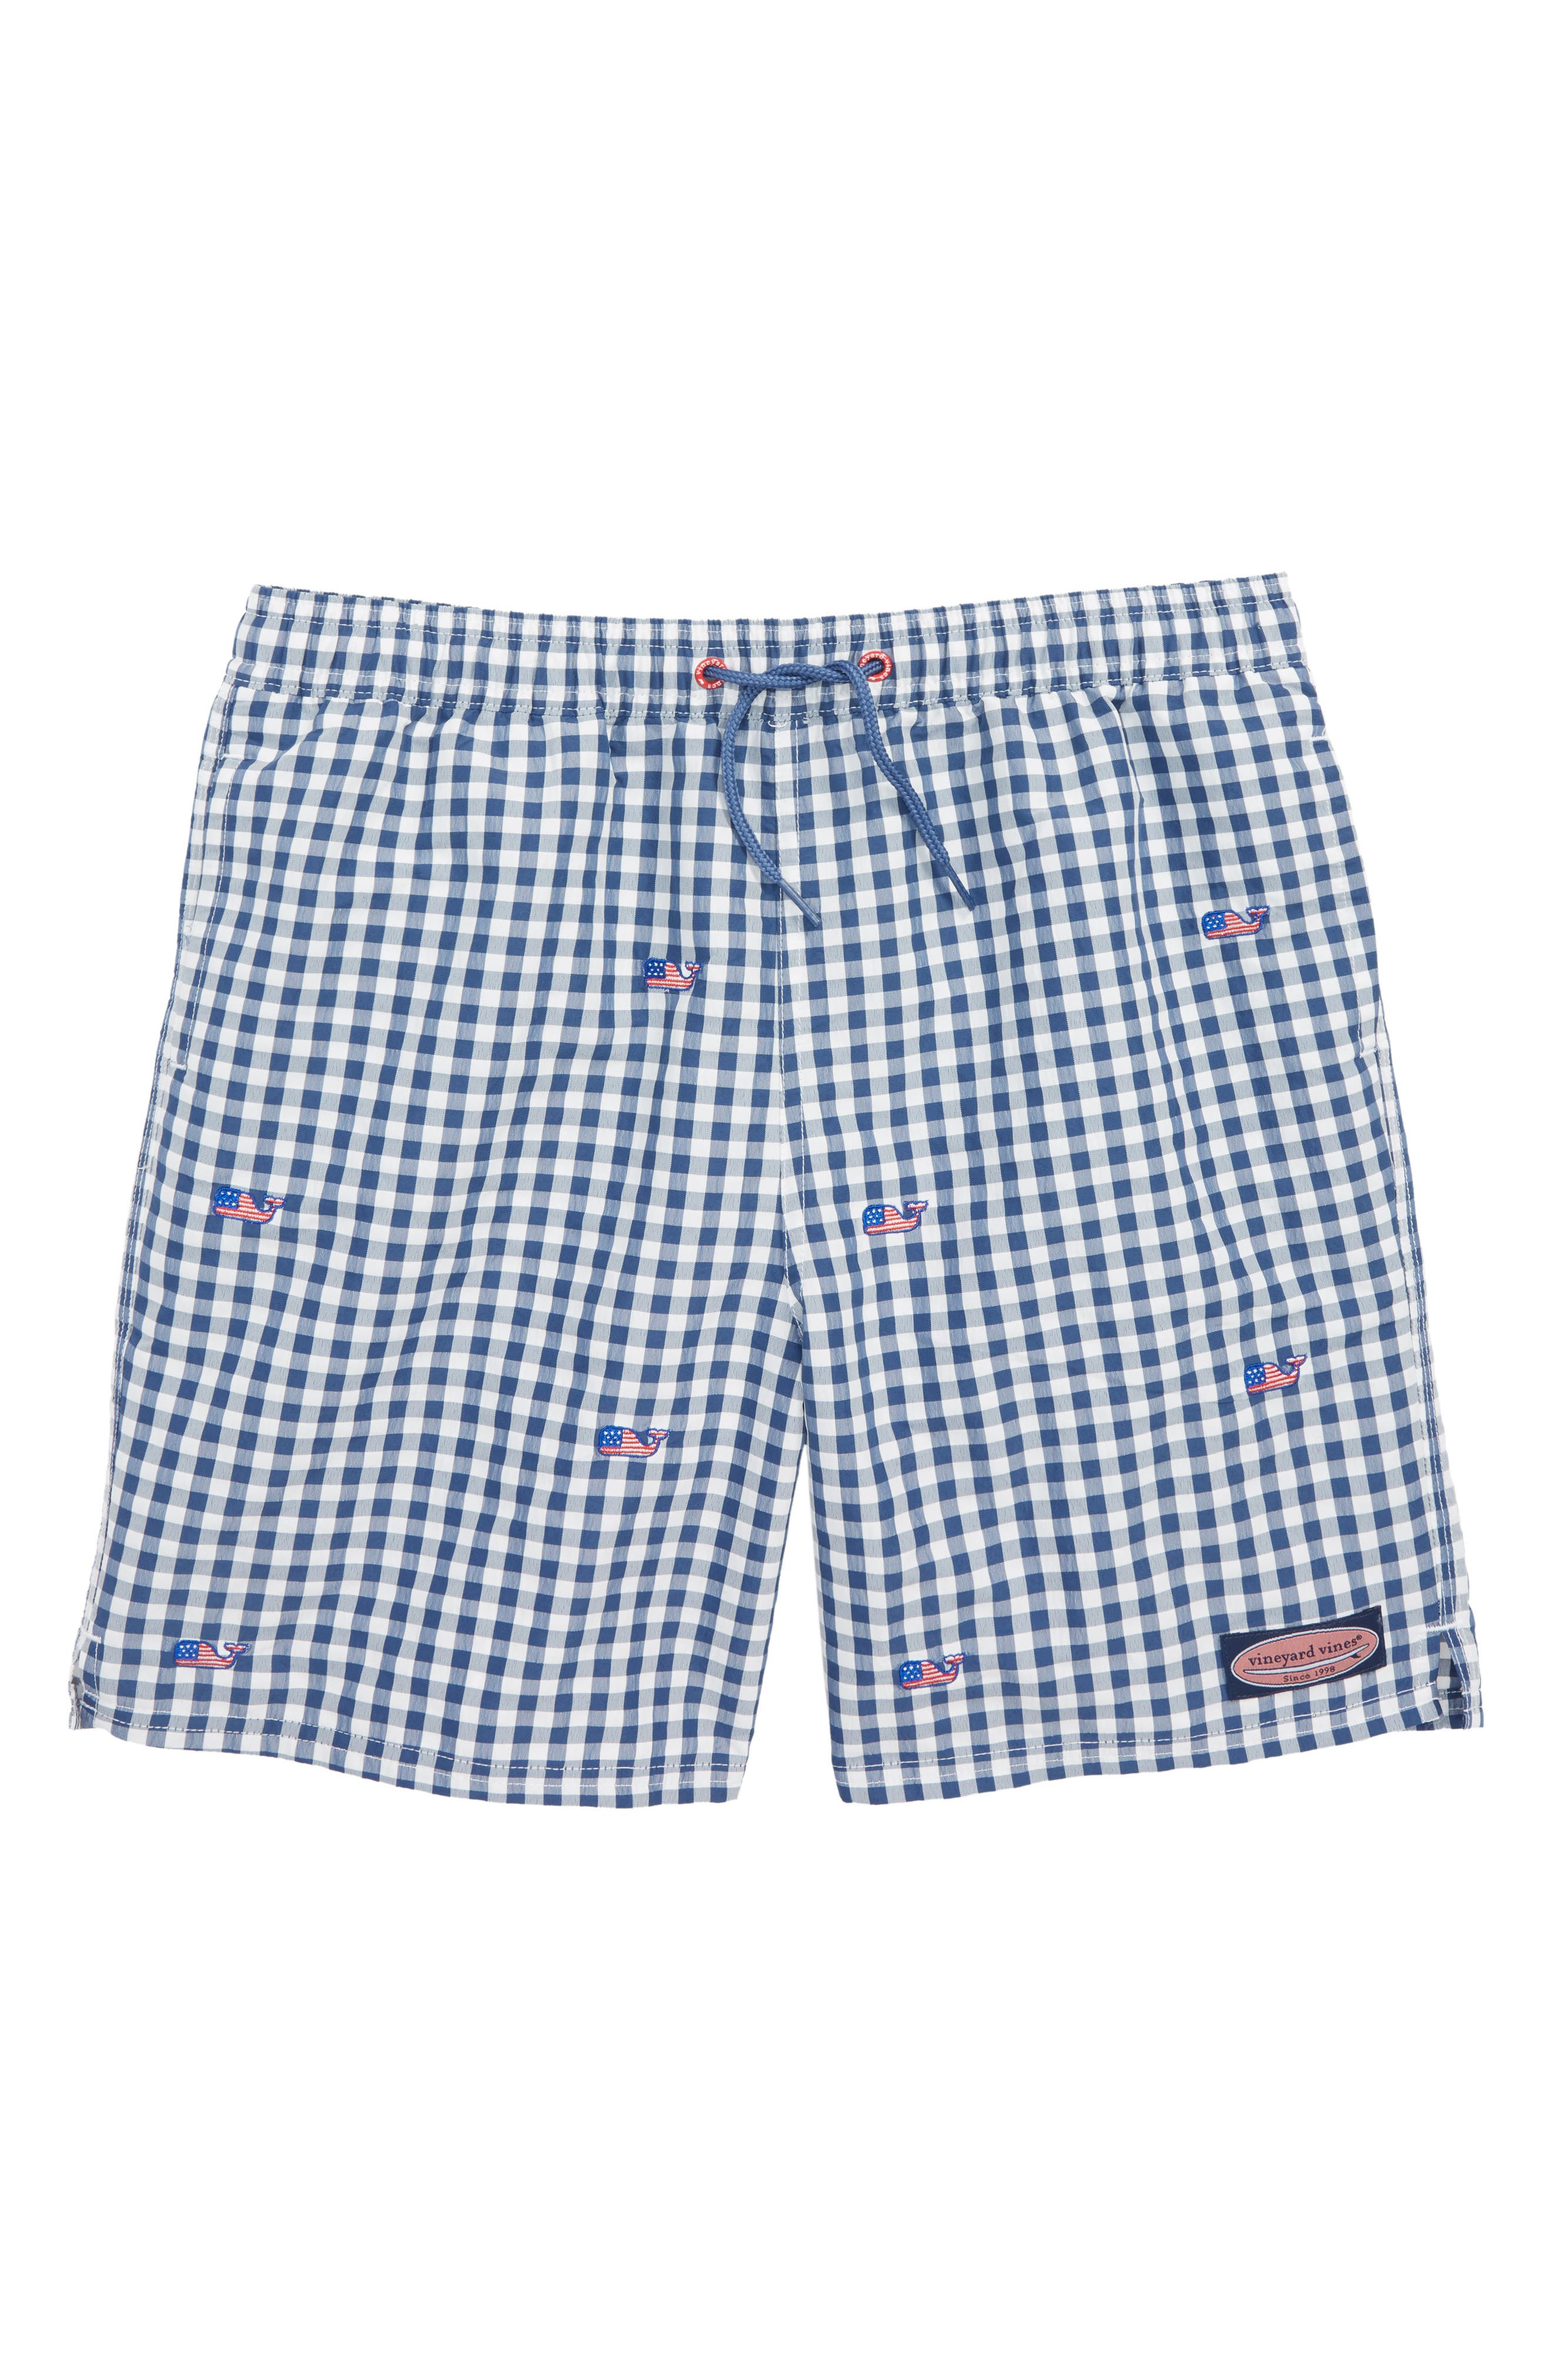 Chappy Gingham Flag Whale Swim Trunks,                         Main,                         color, 461